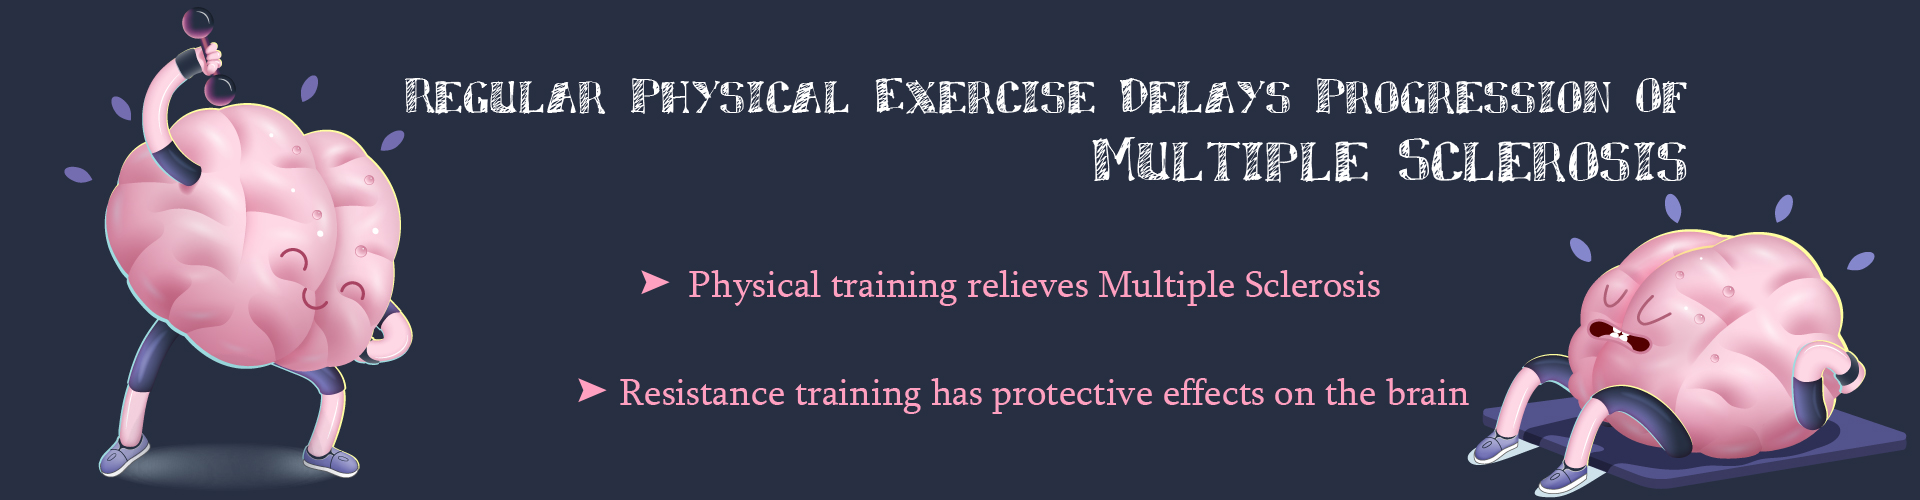 Can Resistance Training Slow Down The Progression Of Multiple Sclerosis?